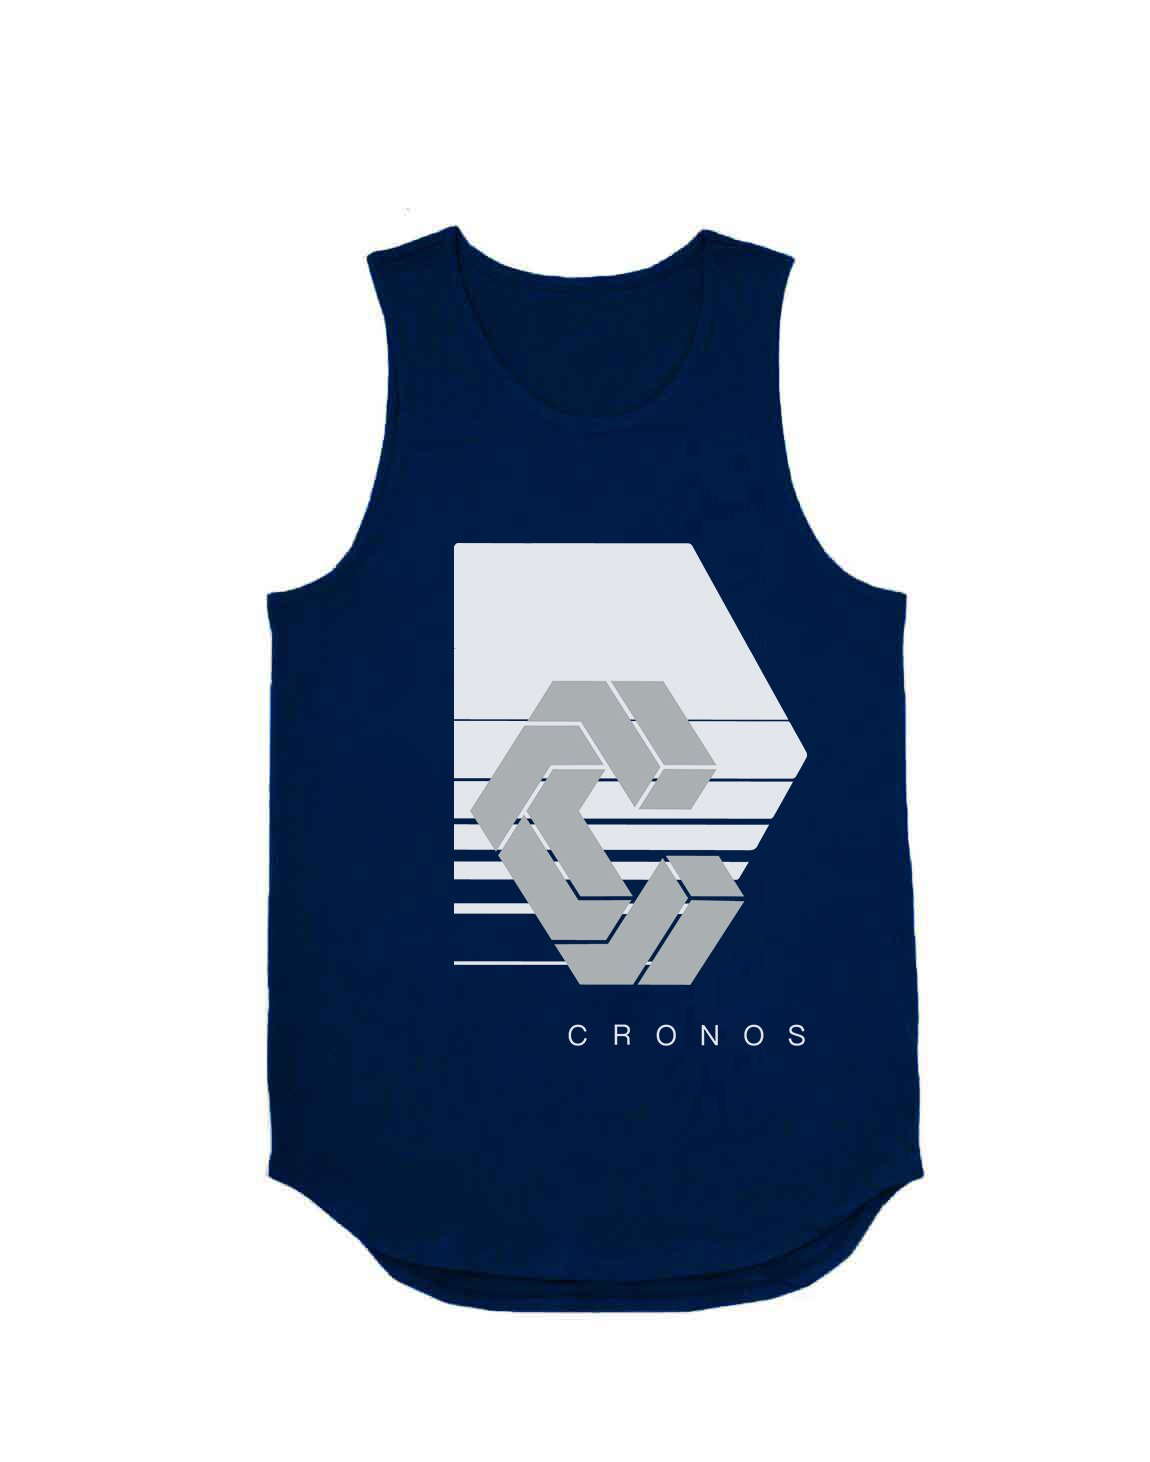 <img class='new_mark_img1' src='https://img.shop-pro.jp/img/new/icons1.gif' style='border:none;display:inline;margin:0px;padding:0px;width:auto;' />CRONOS REFLECTION LOGO TANK TOP【NAVY】